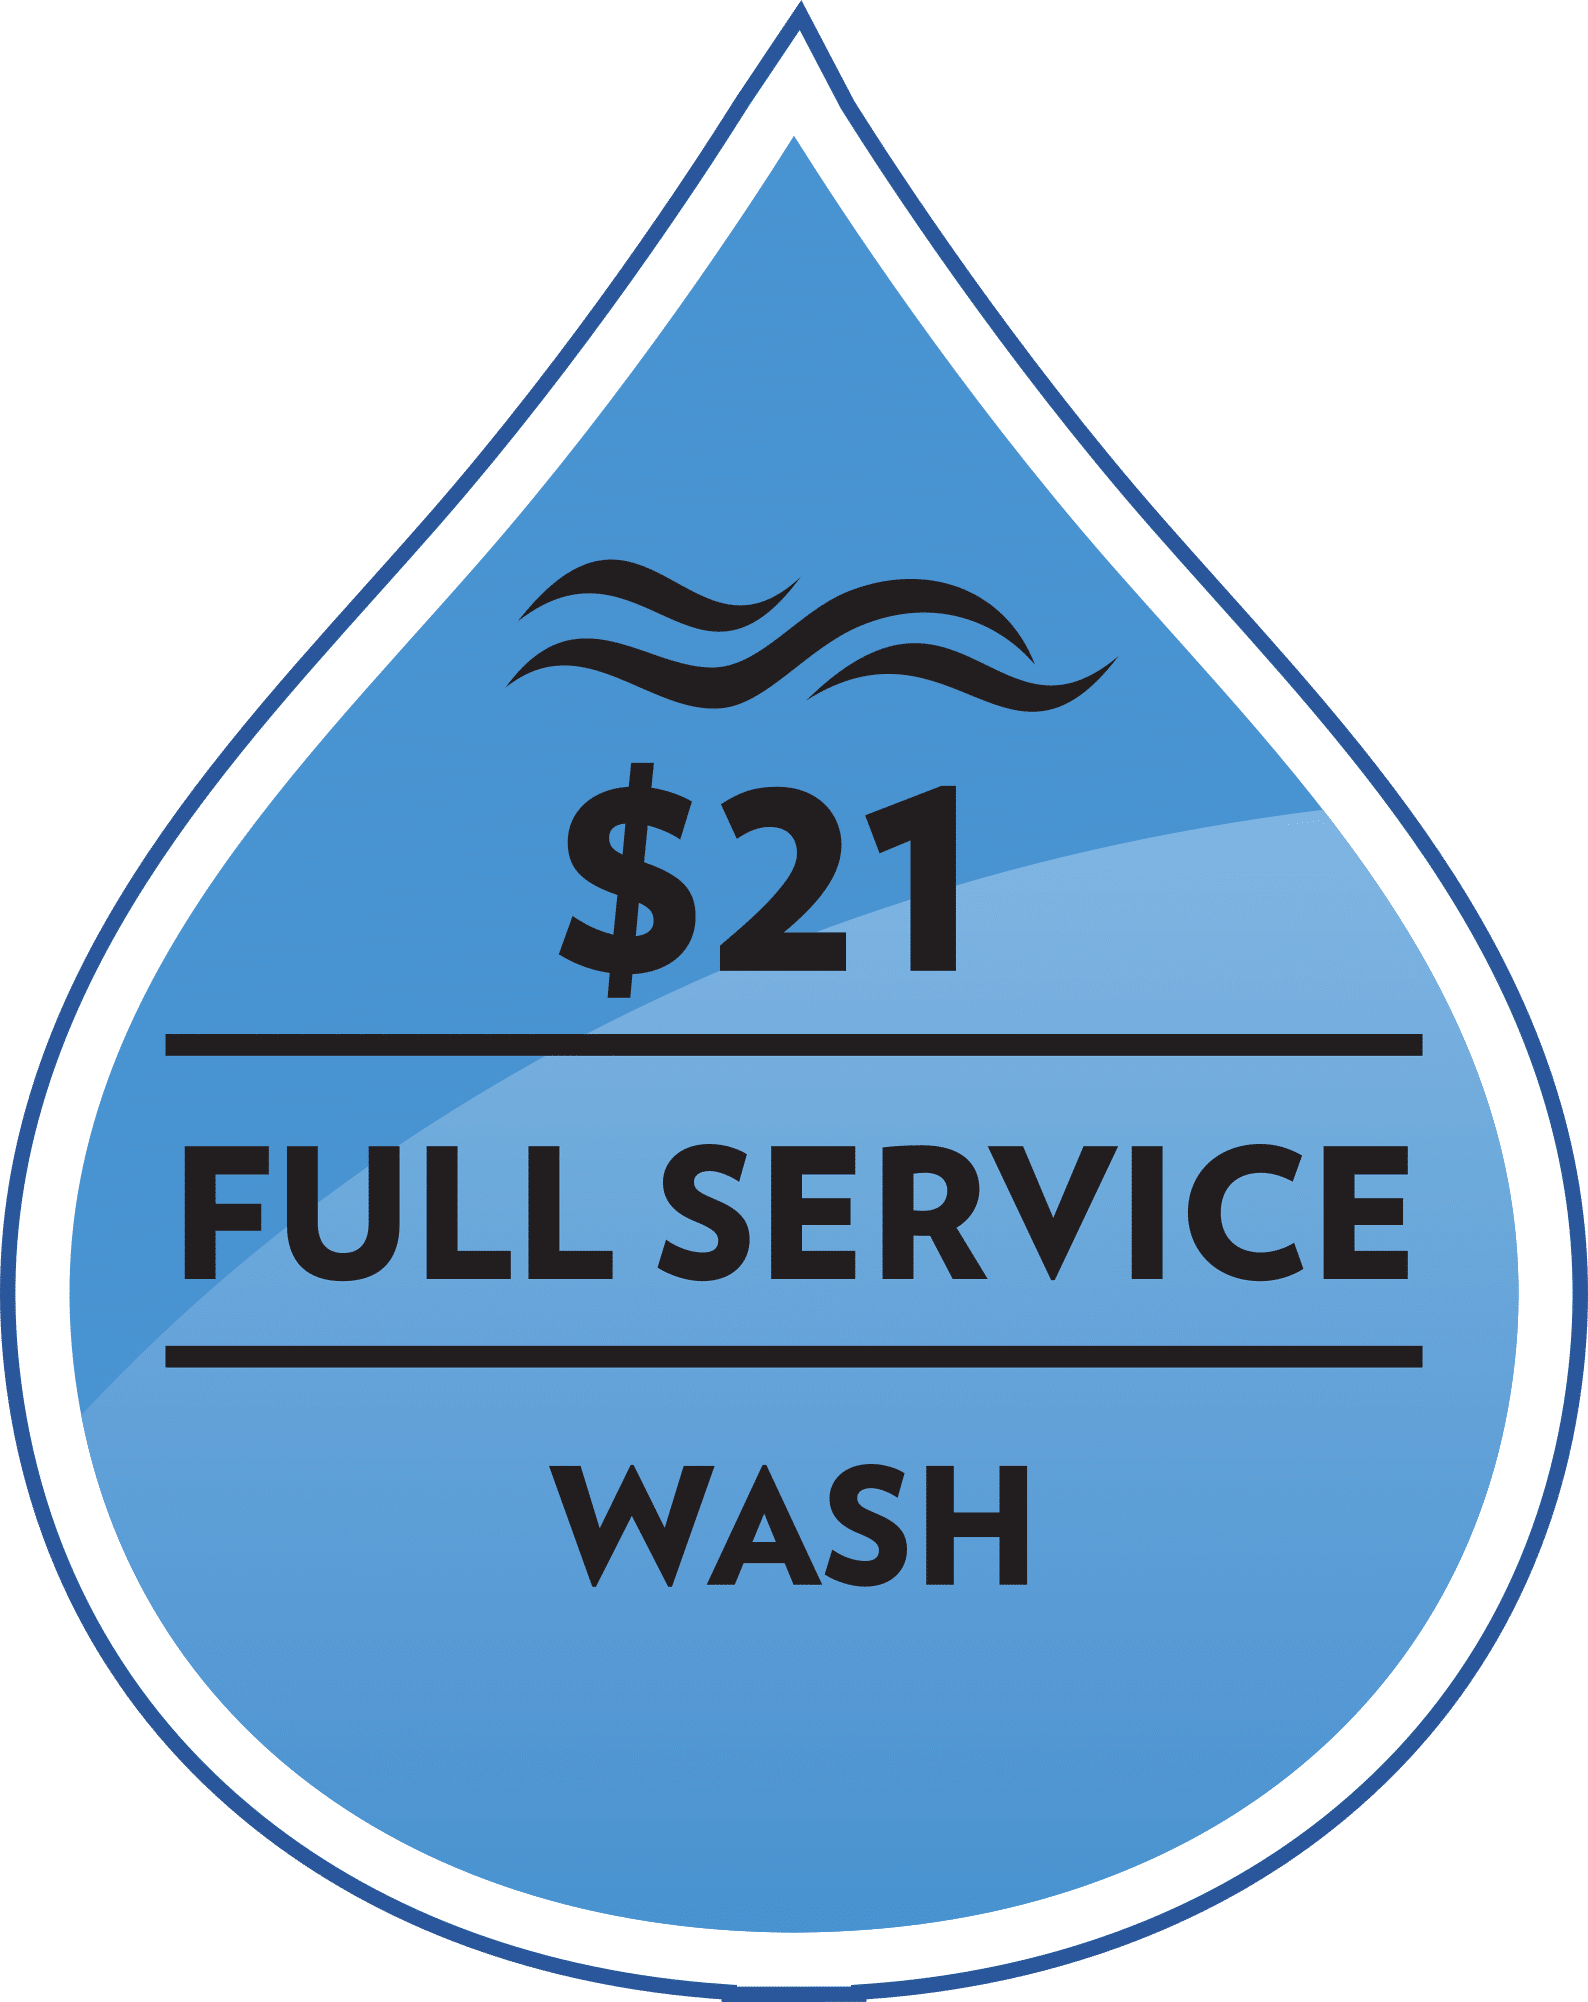 touchless carwash | auto spa etc. | full service touchless carwash | Full Service Spa